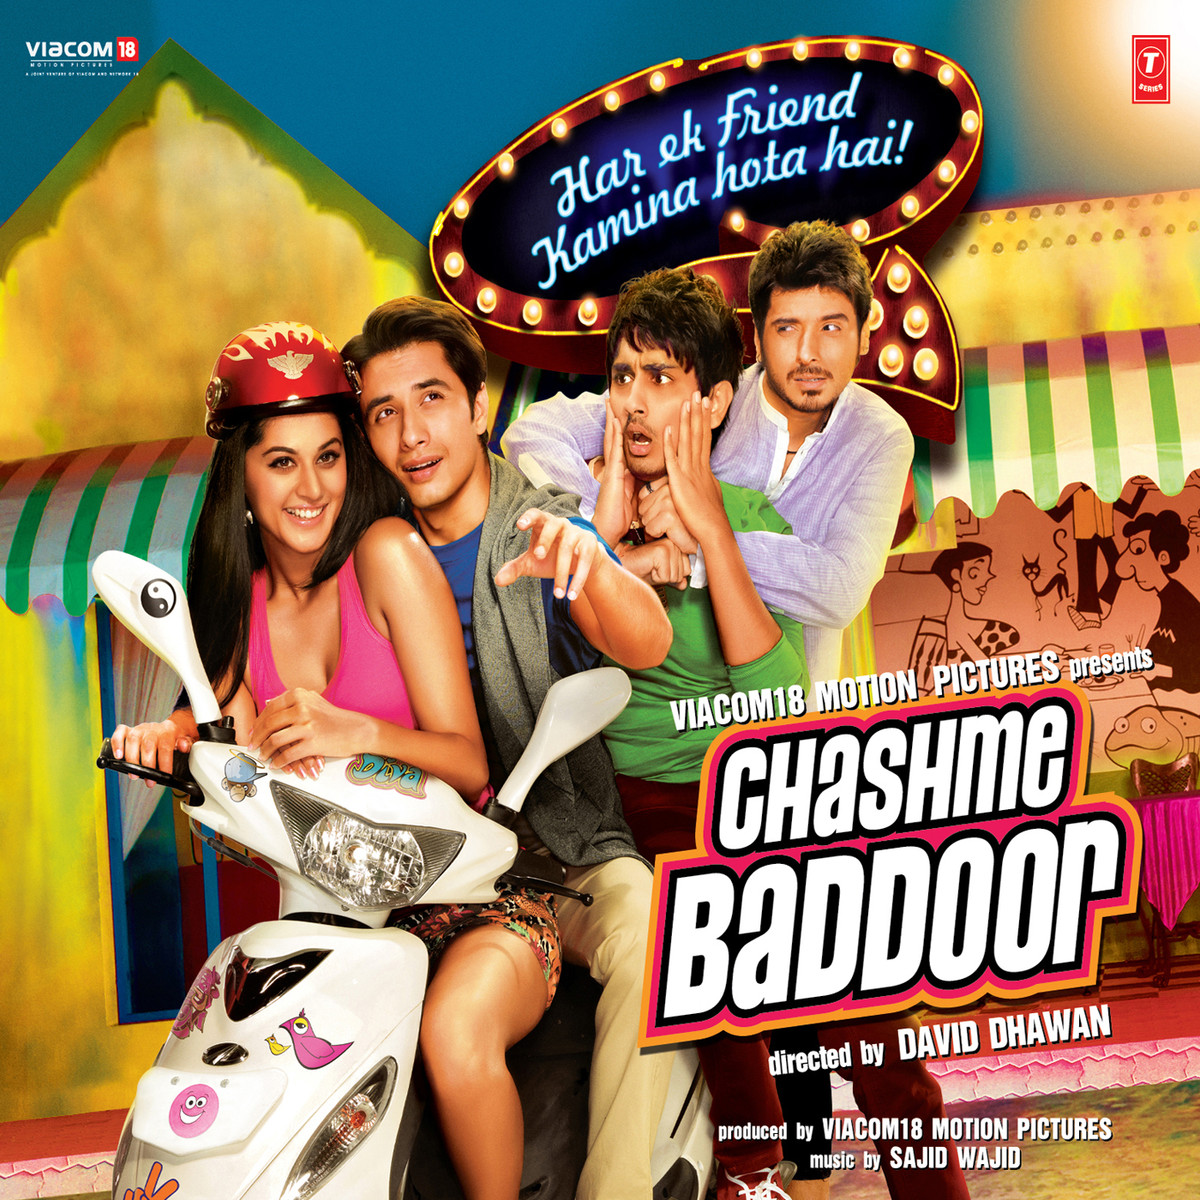 Lai La Lai Mp3 Naa Song Downld: Chashme Baddoor (2013) Hindi Movie Songs Download